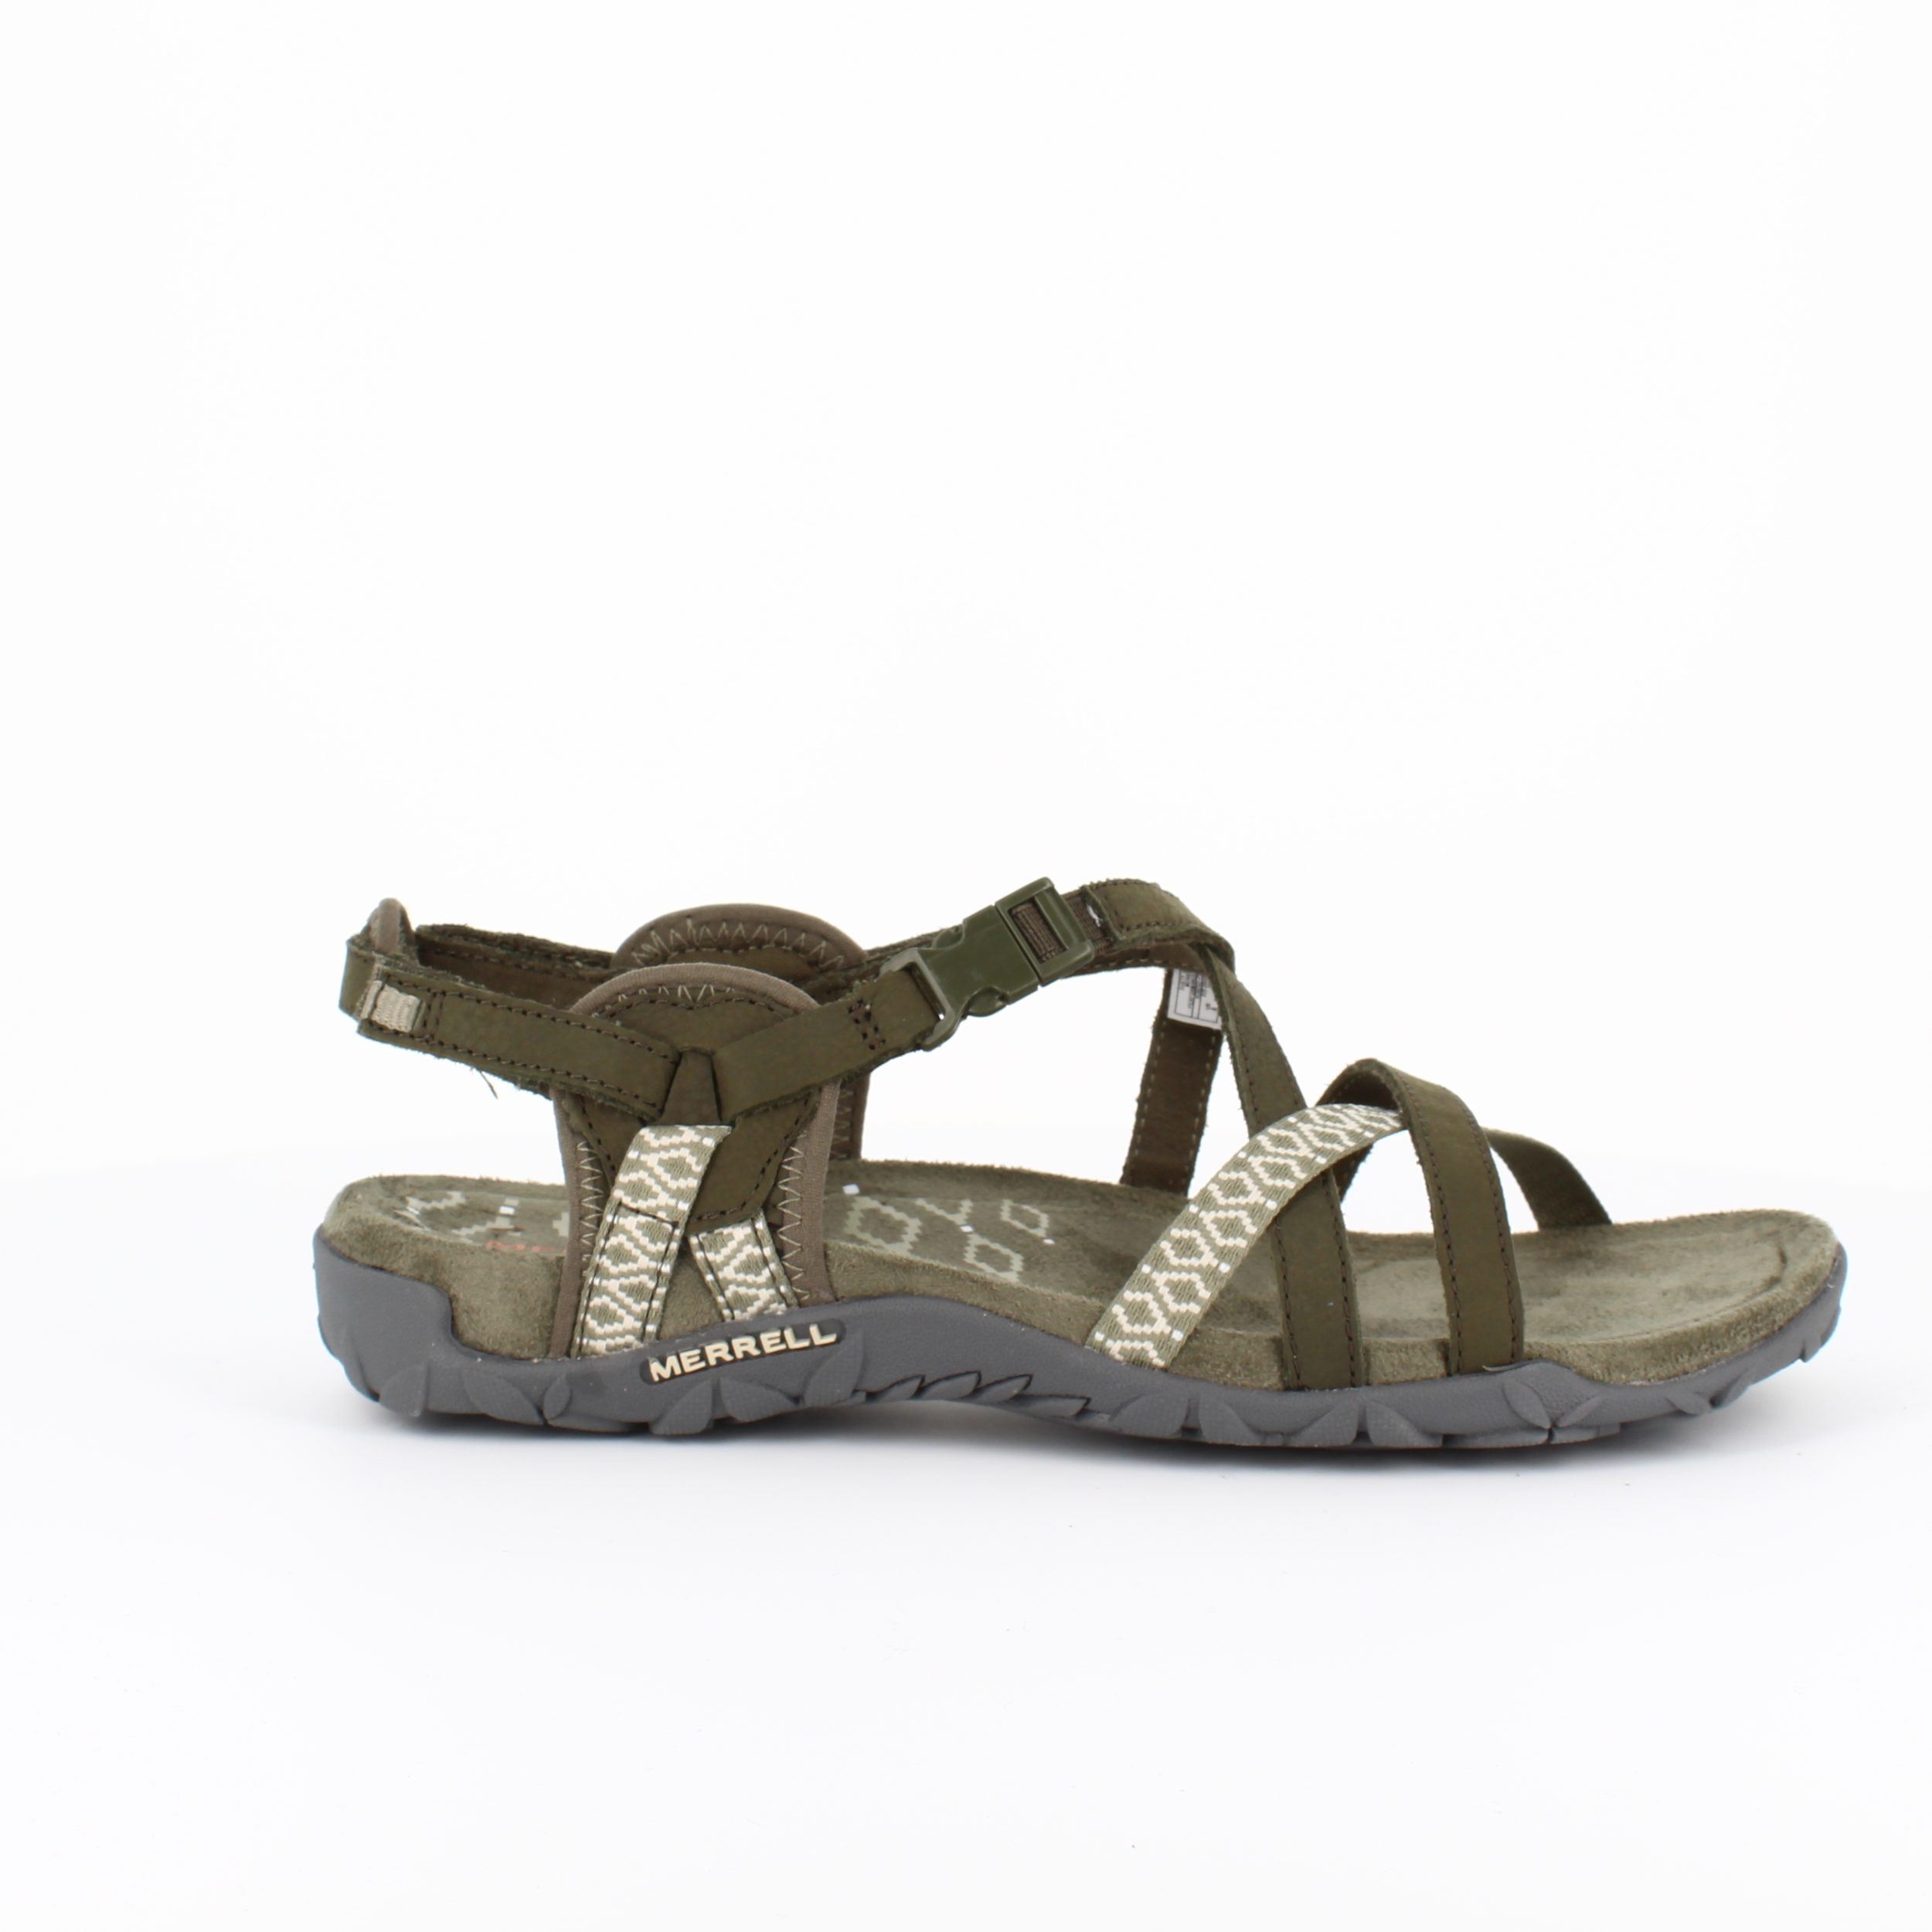 Image of   Olivenfarvet sandal, Terran Lattice sandal fra Merrell - 41